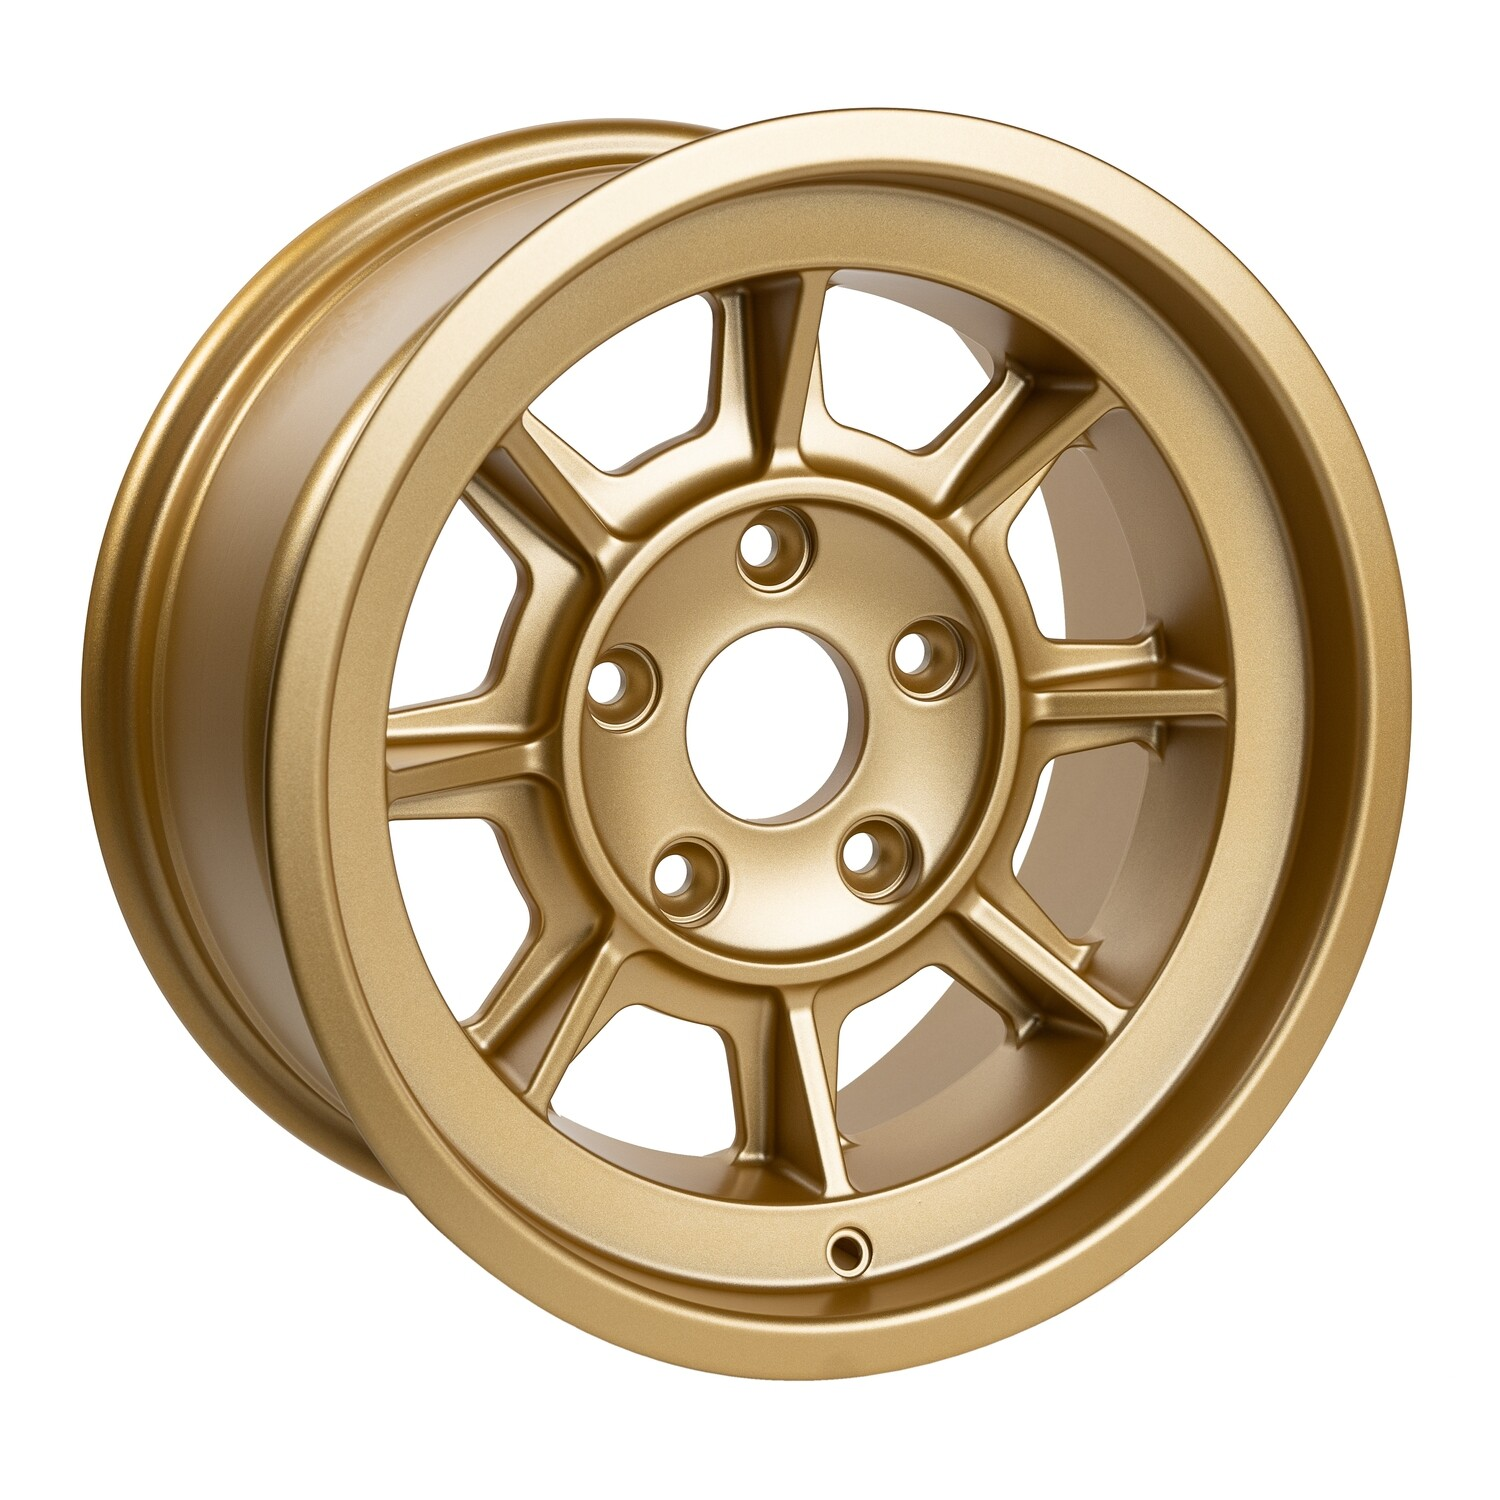 PAG1680 Satin Gold 16 x 8